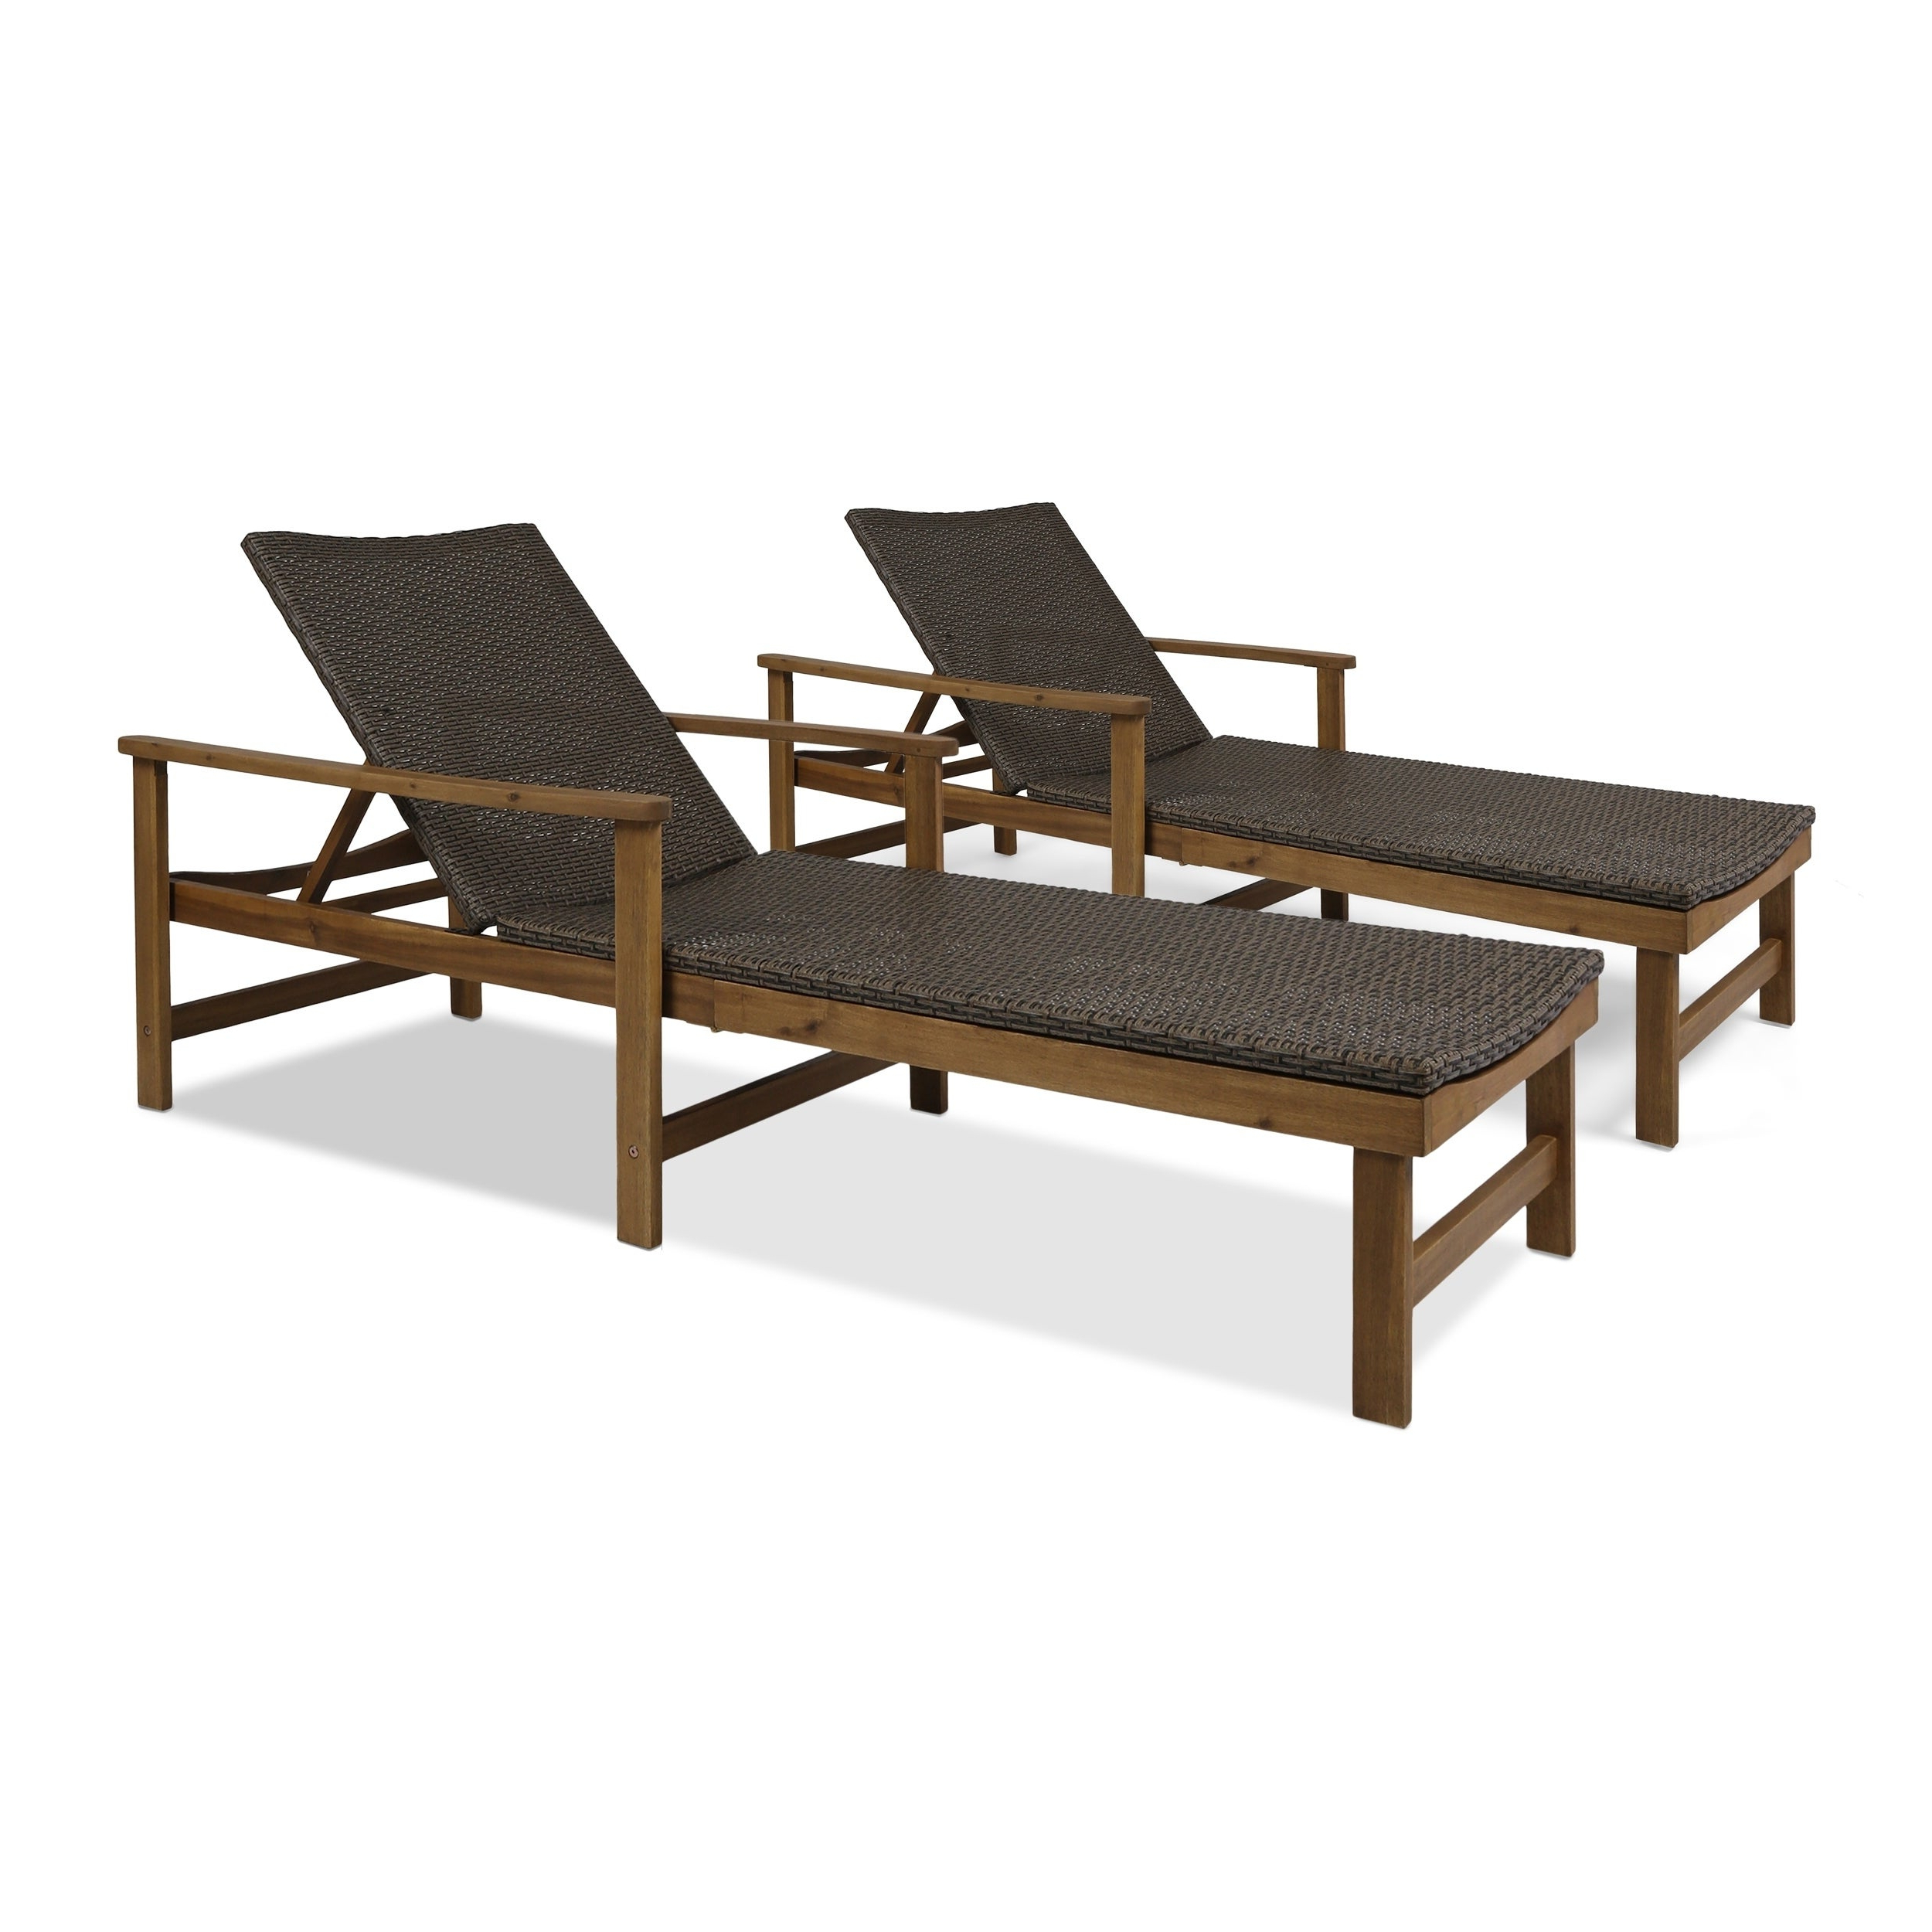 Hampton Outdoor Chaise Lounges Acacia Wood And Wicker (Set Of 2) Christopher Knight Home Intended For Favorite Outdoor 3 Piece Acacia Wood Chaise Lounge Sets (View 11 of 25)